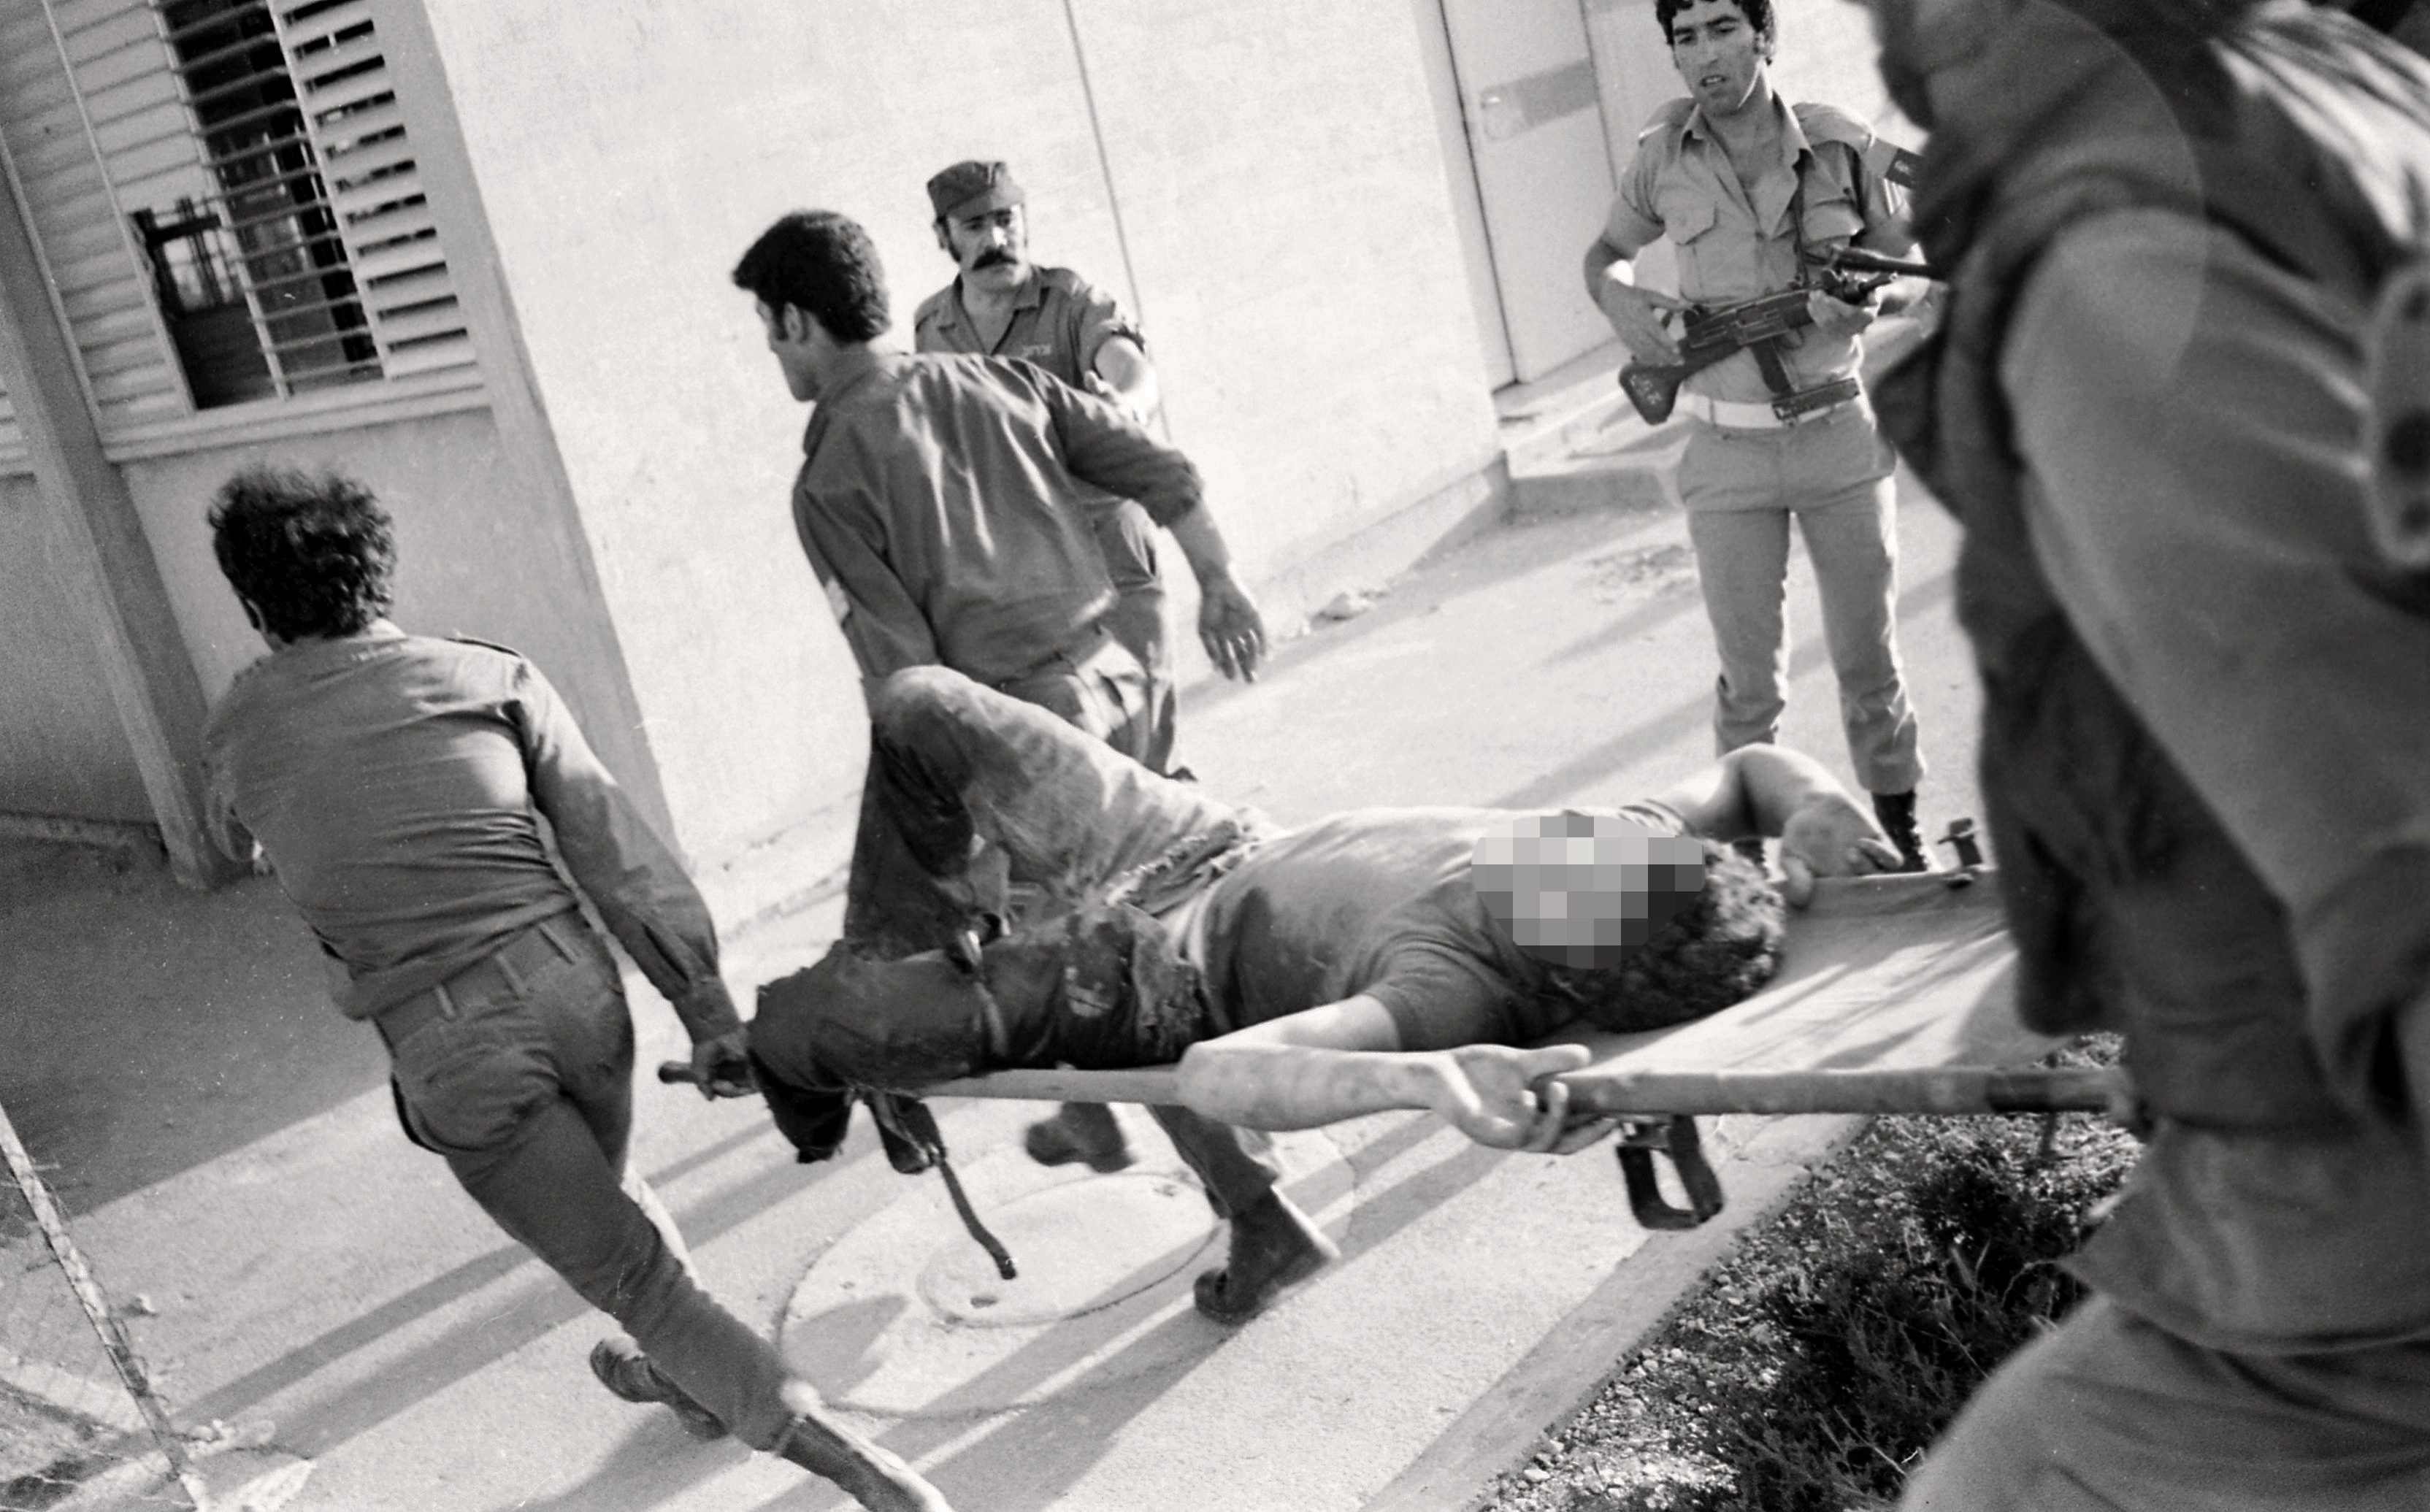 Arab terrorist group attacked a school at Maalot killing several children and wounded thenth of them. IDF attacked the group killing the terrorists. Photo shows: IDF carrying wounded children 1974/05/15 Copyright © IPPA 09239-010-37 Photo by IPPA Staff